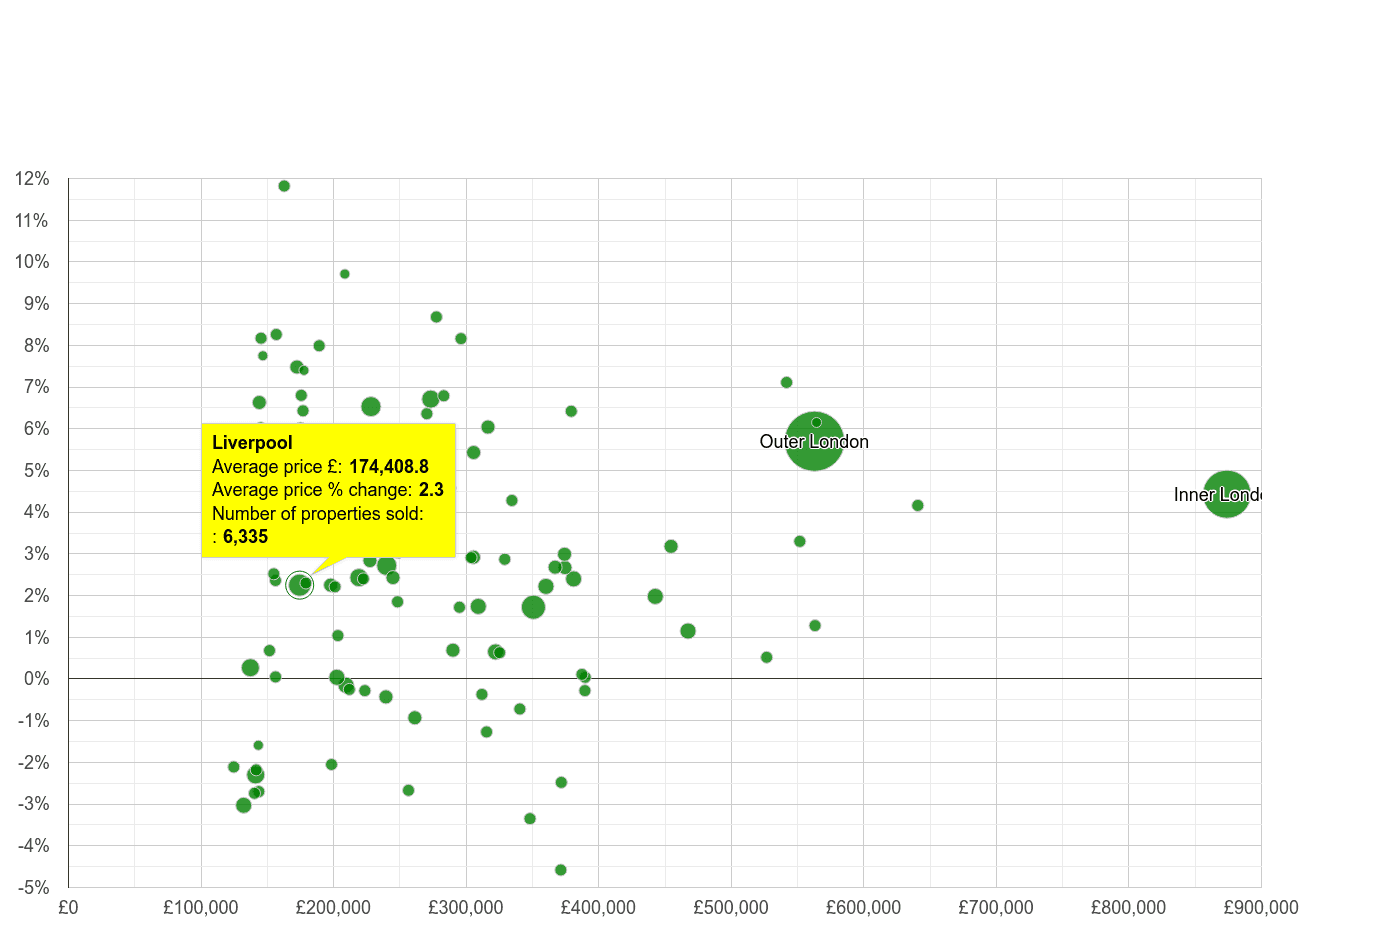 Liverpool house prices compared to other cities